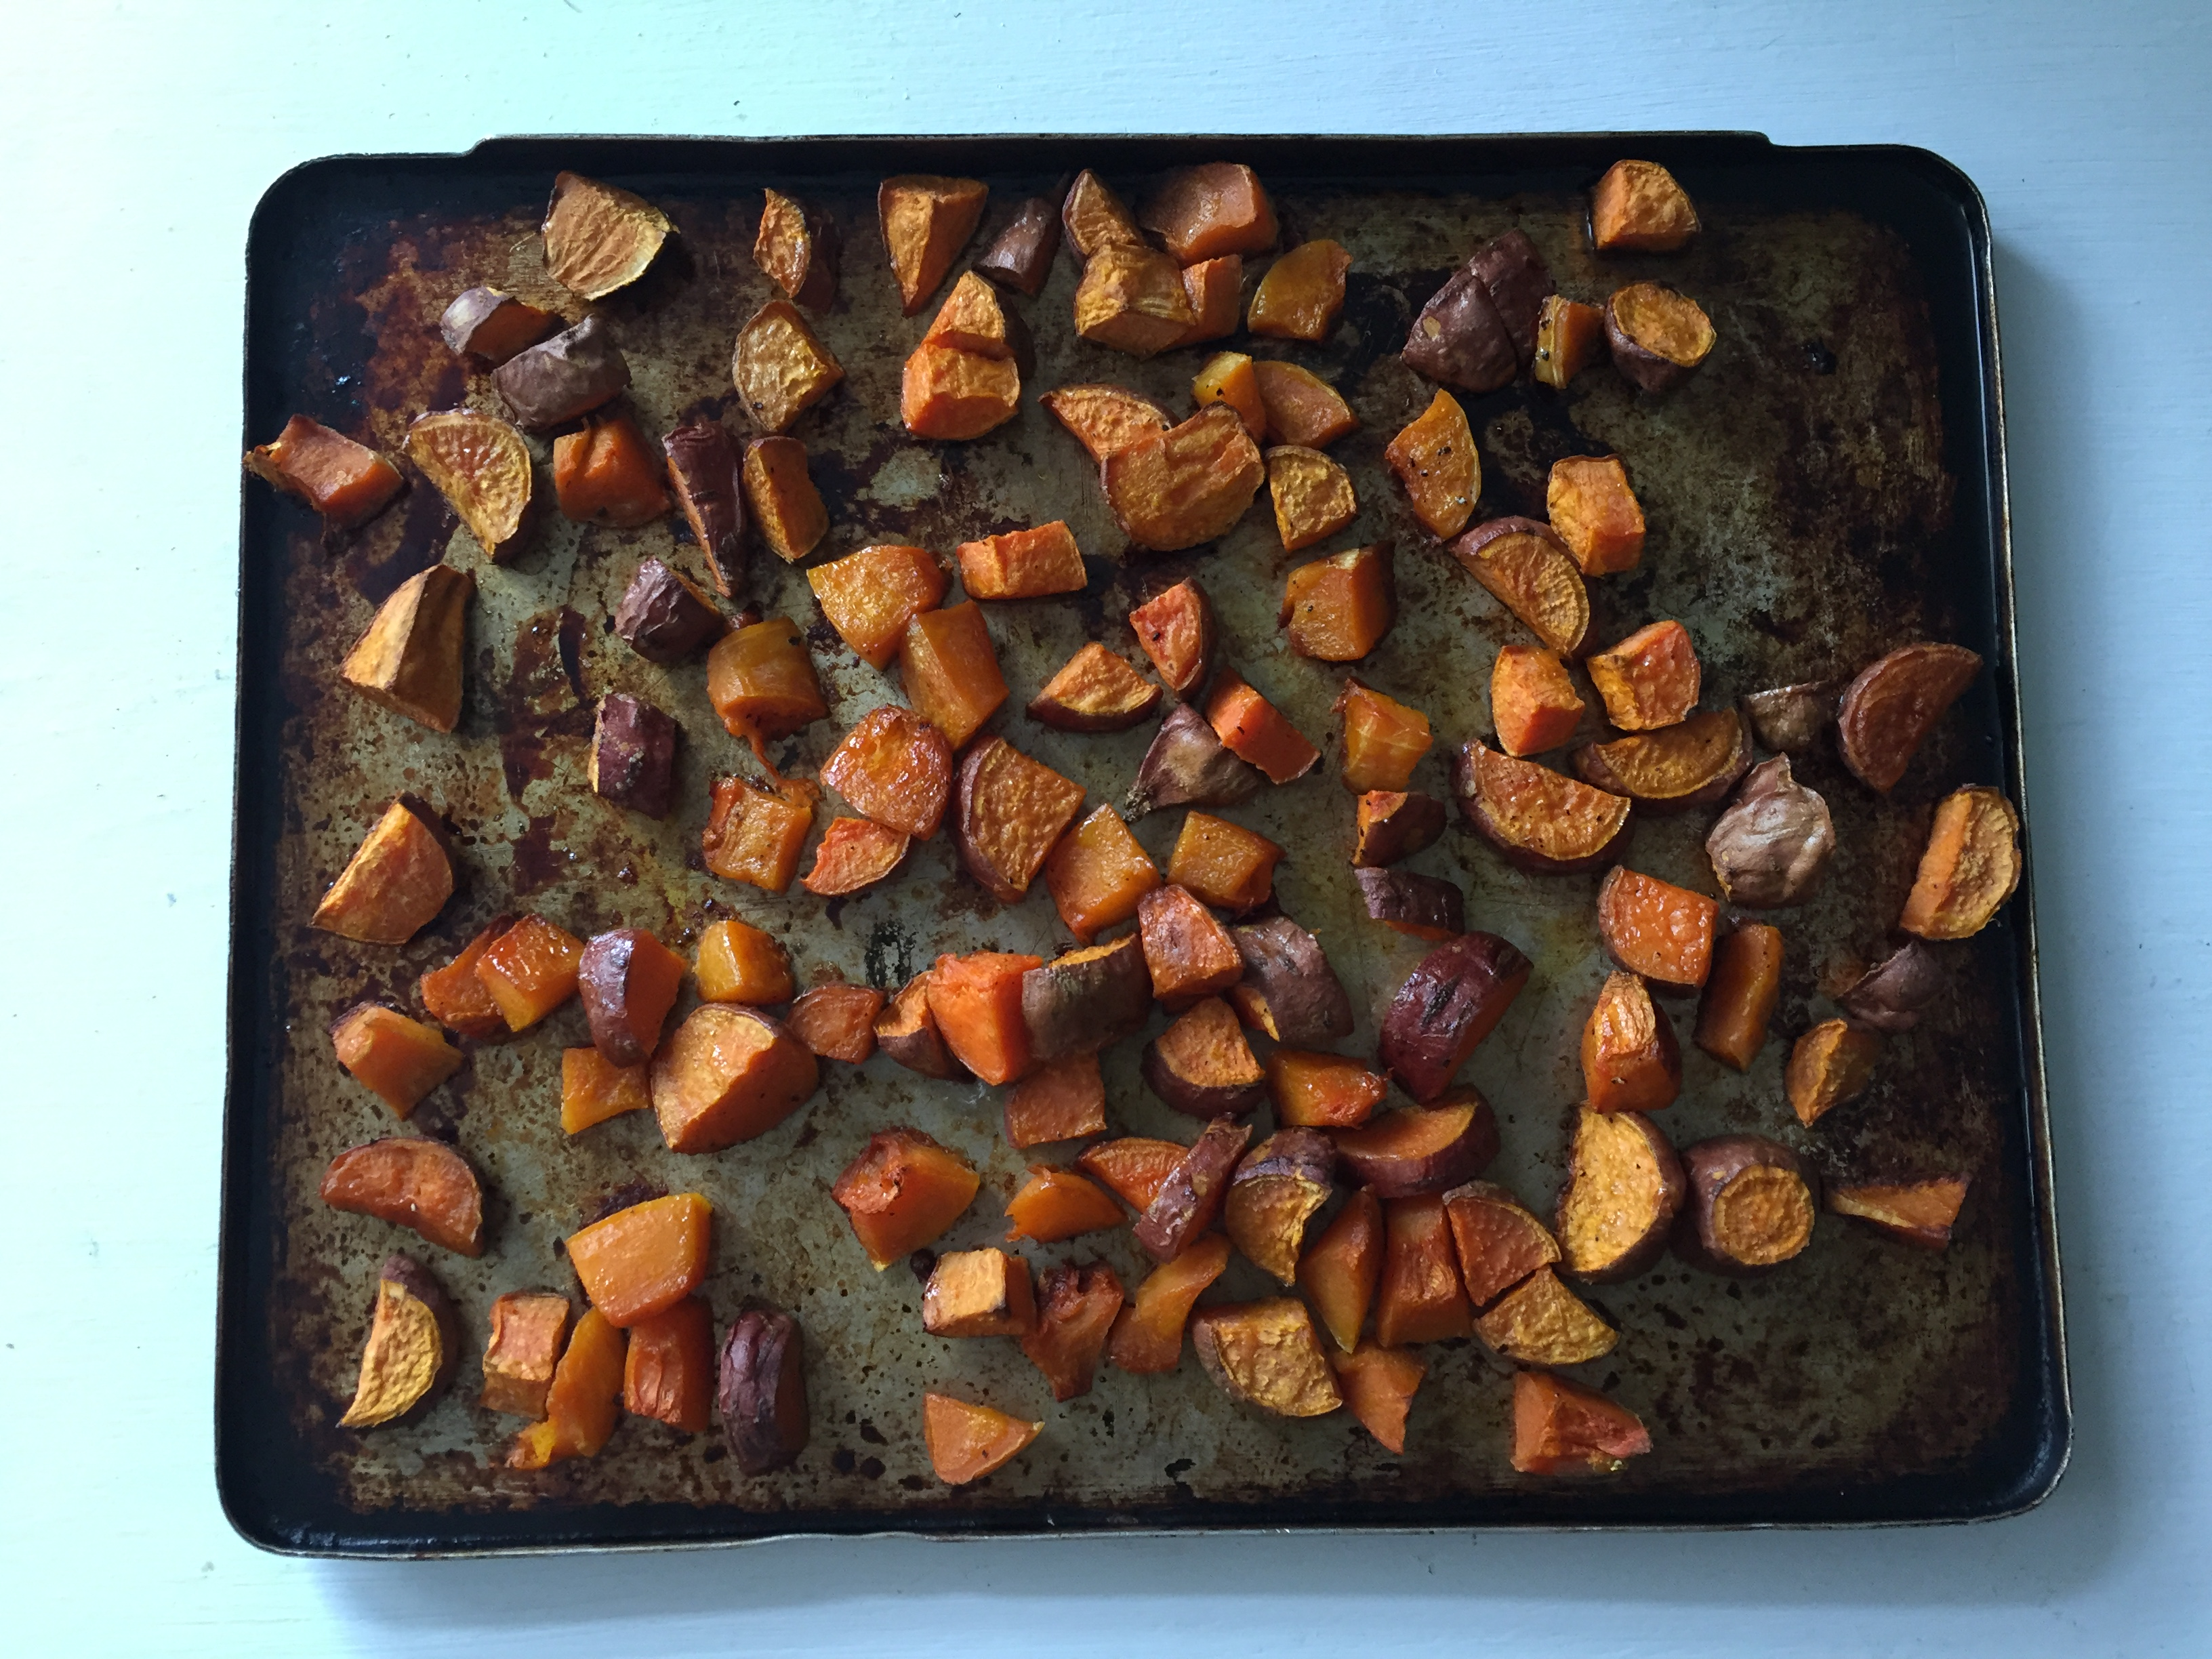 Squash and sweet potato medley with sage and pine nuts